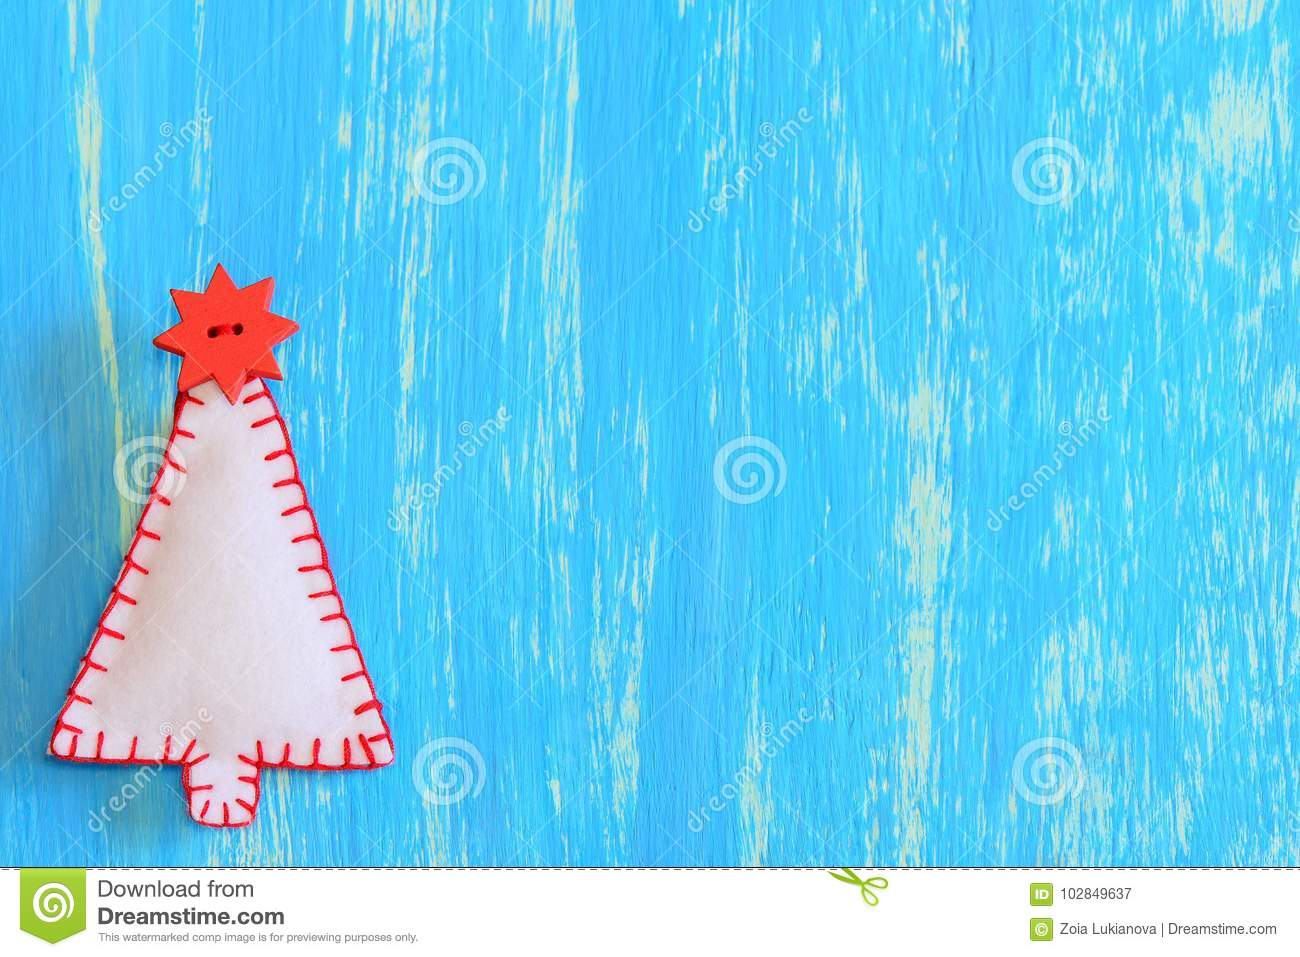 Handmade Felt Christmas Tree On A Blue Wooden Background With Copy ...